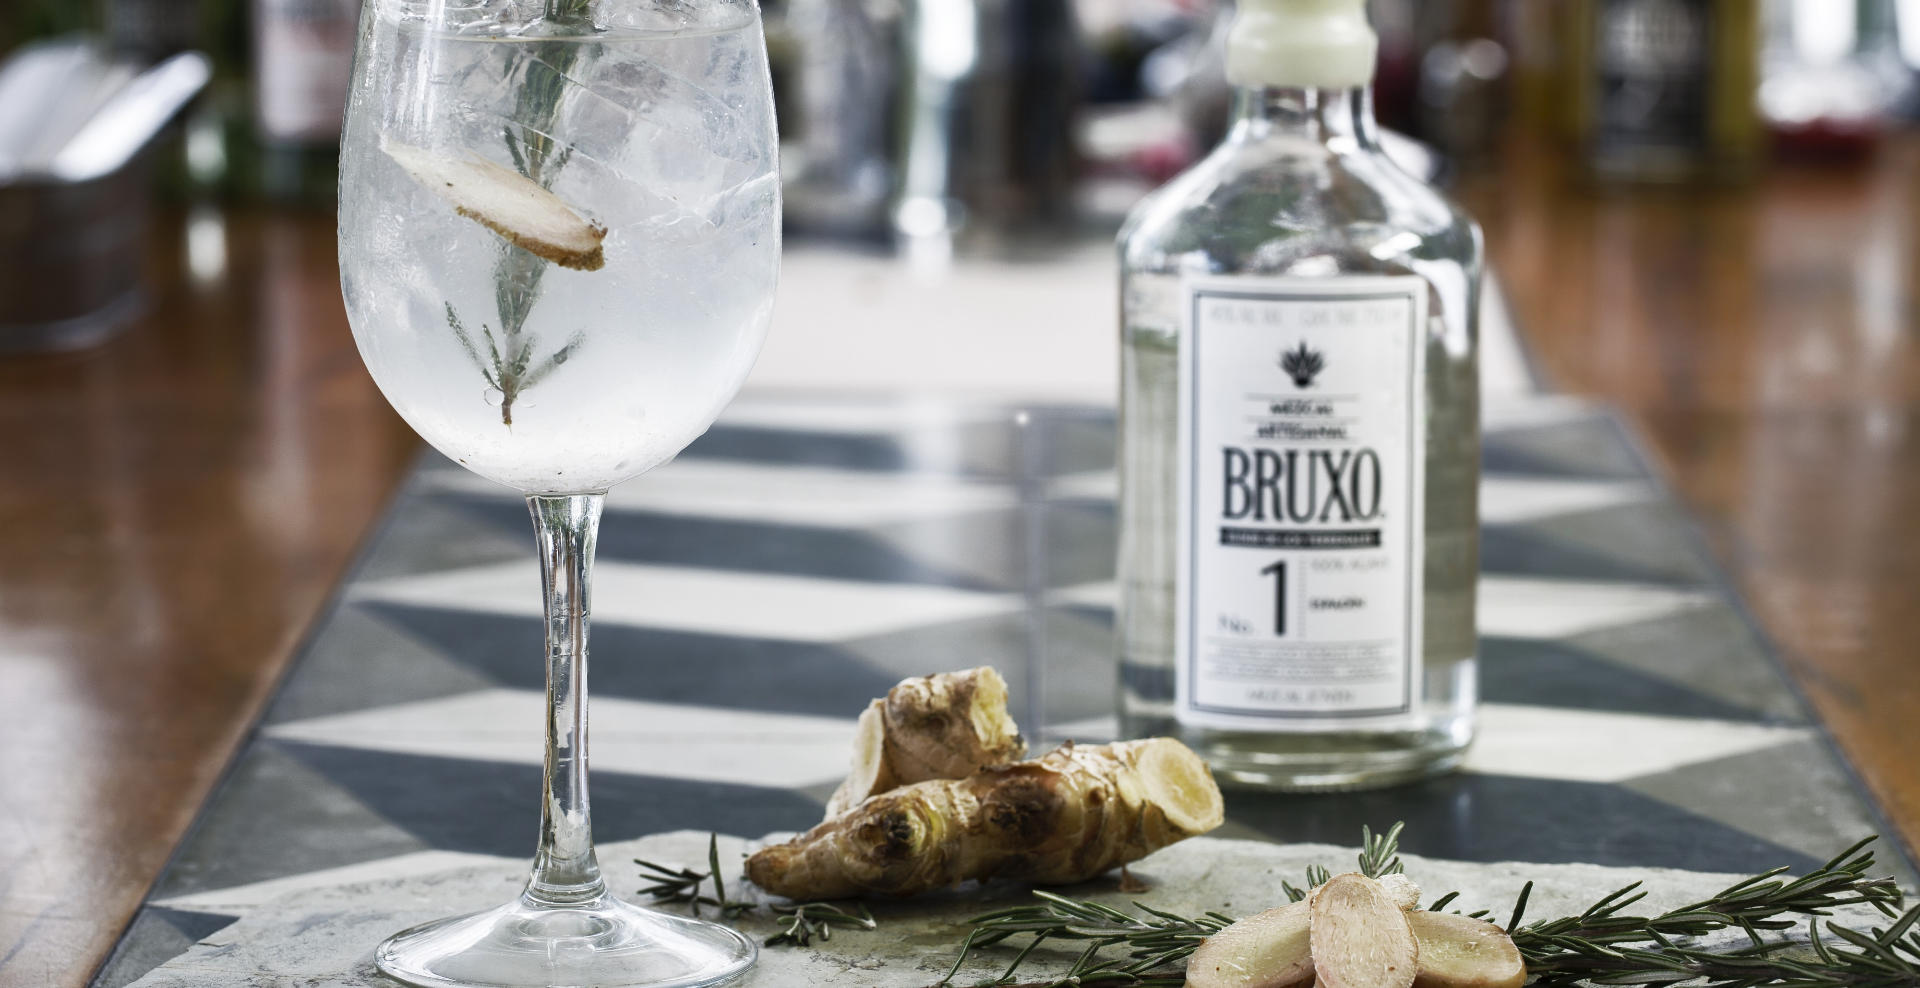 Alchemy with Bruxo Mezcal